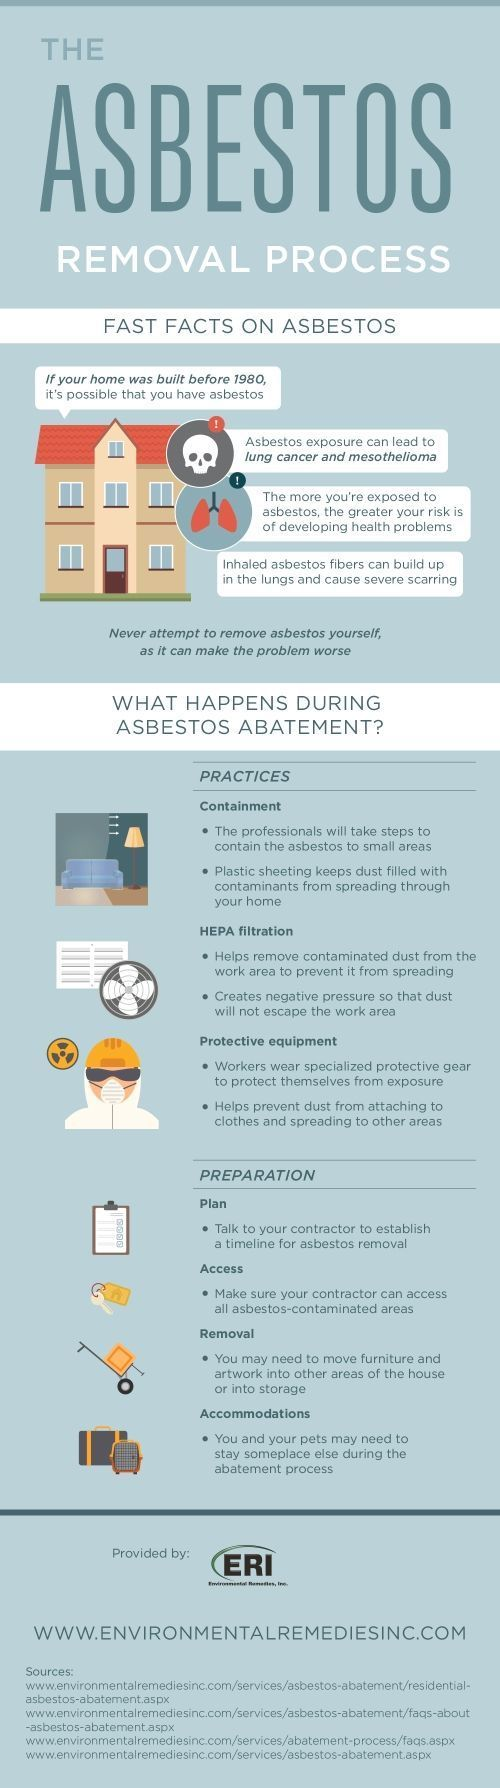 12 best asbestos infographics images on pinterest info graphics asbestos removal should only be performed by someone with the appropriate training education and skills check out this infographic on the removal process 1betcityfo Images